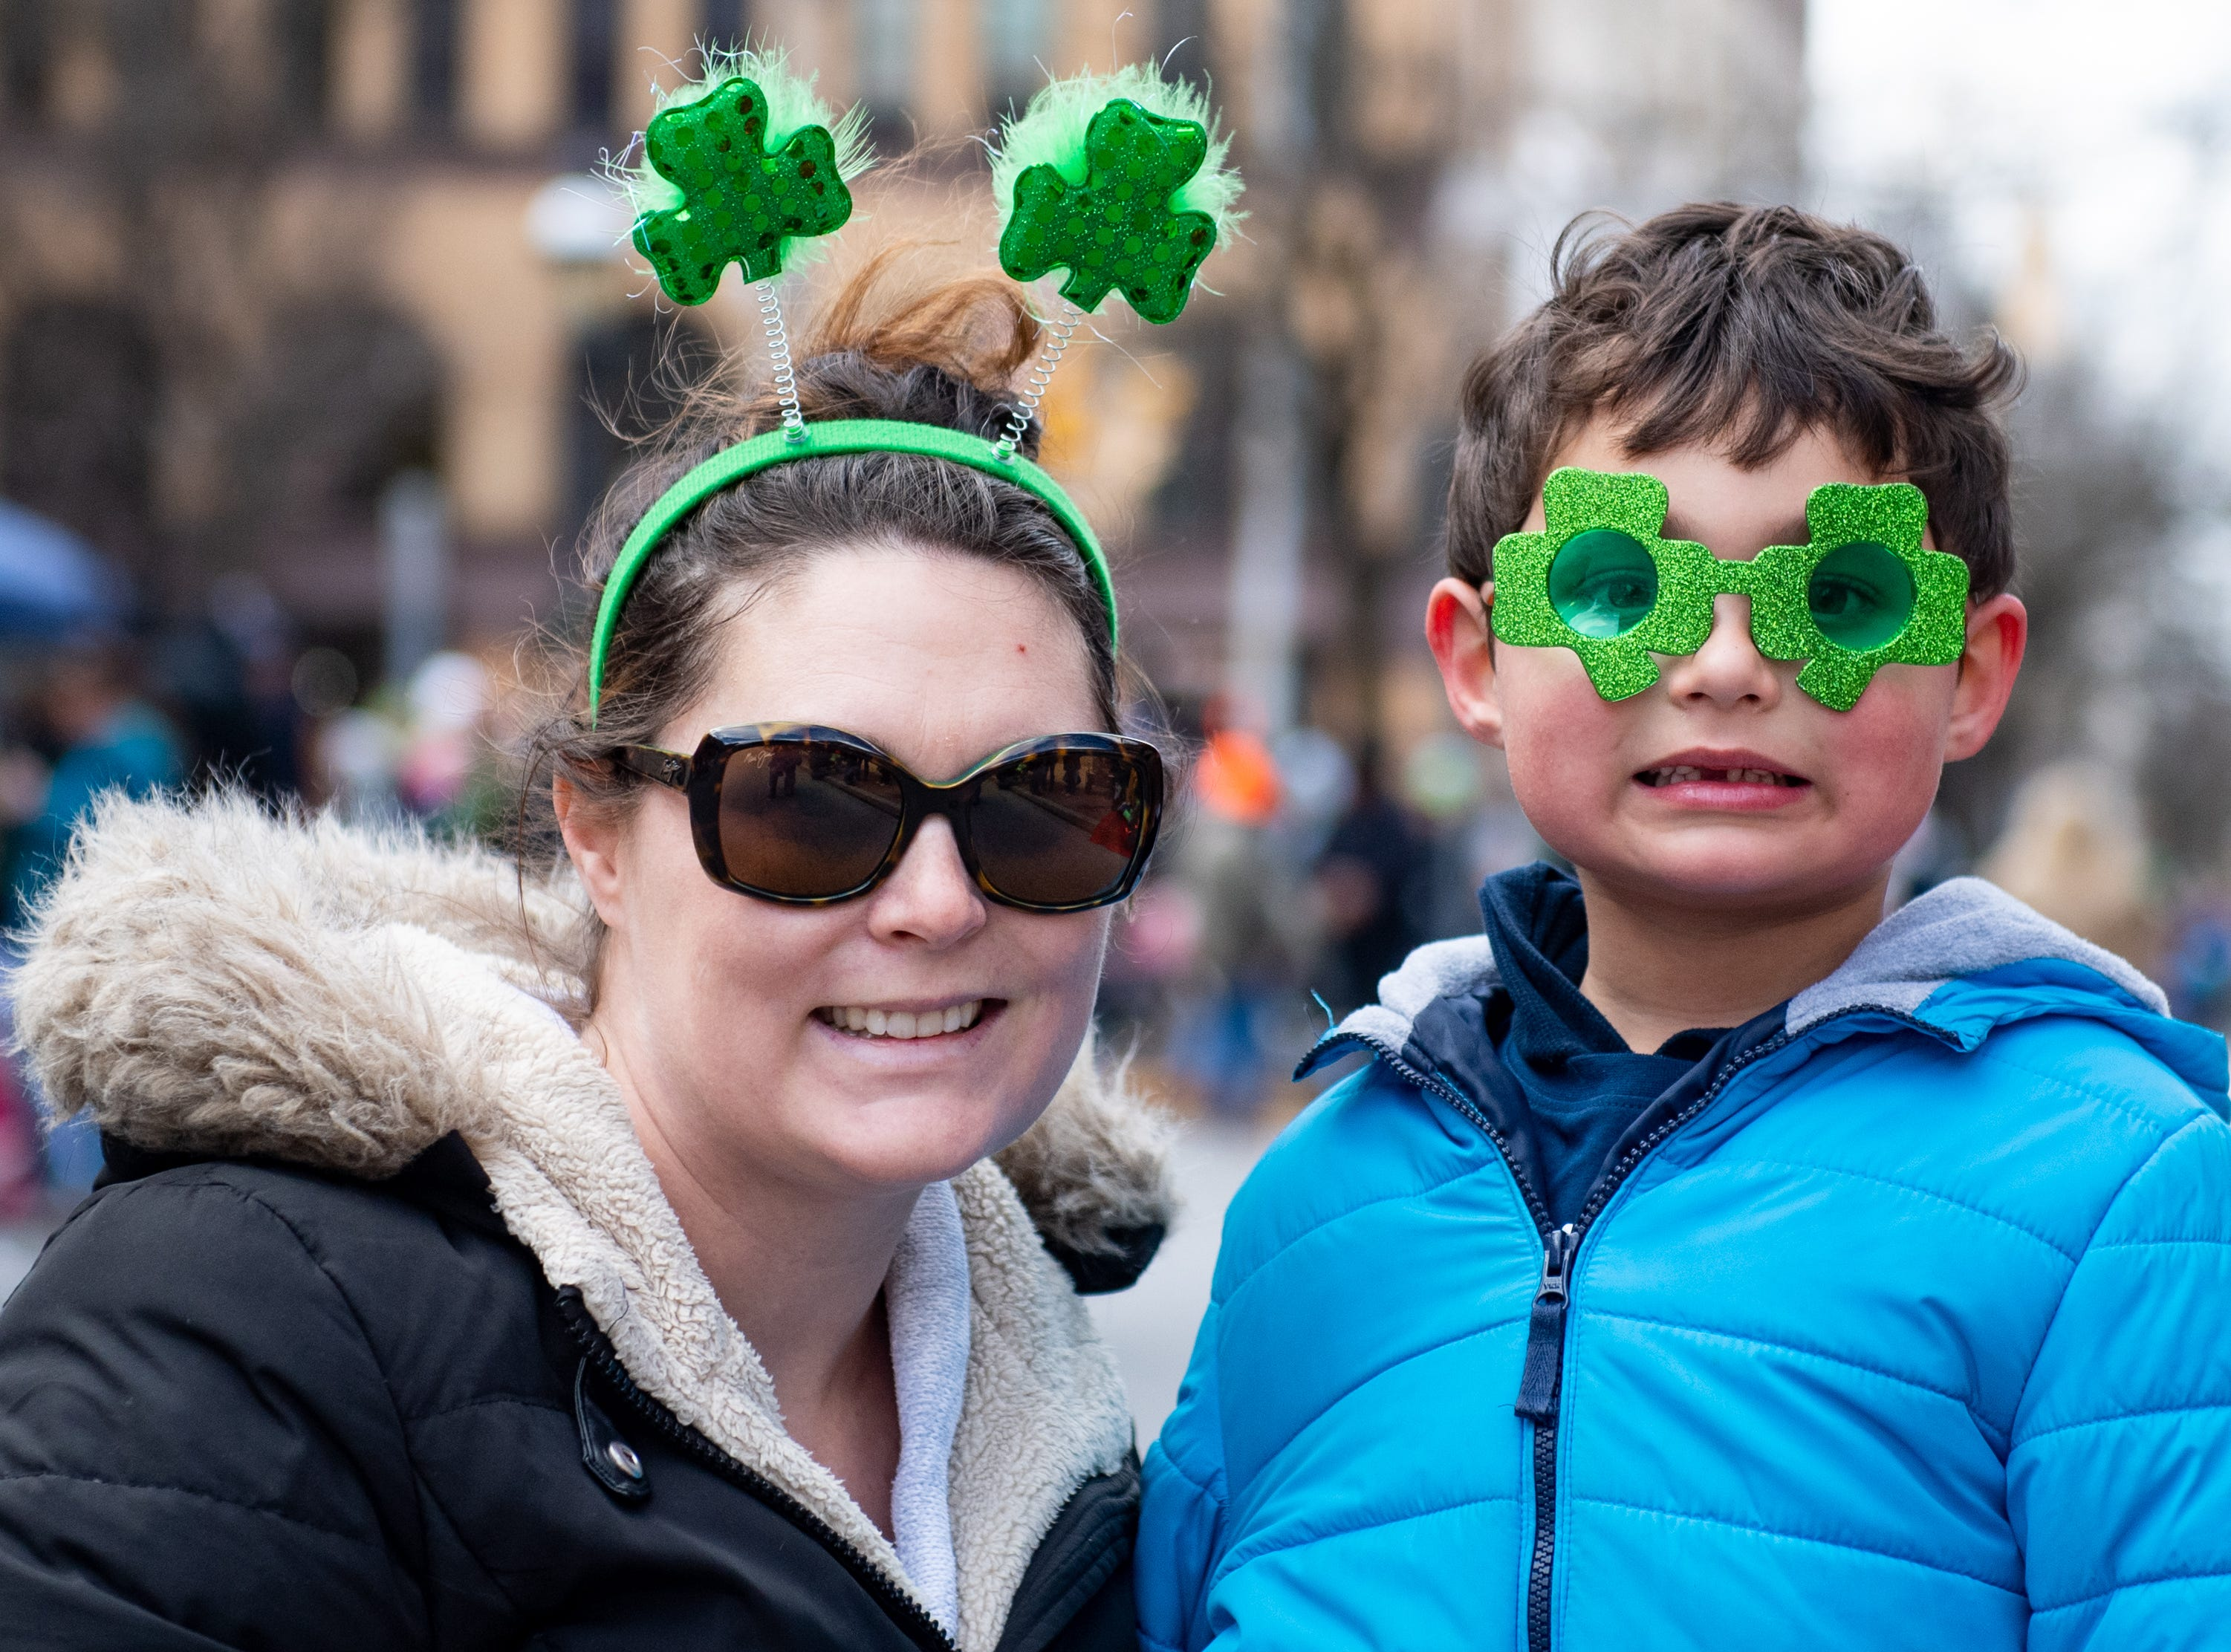 Julie Kumar and her son, Rohan, are ready for the 36th Annual St. Patrick's Day Parade, March 16, 2019.